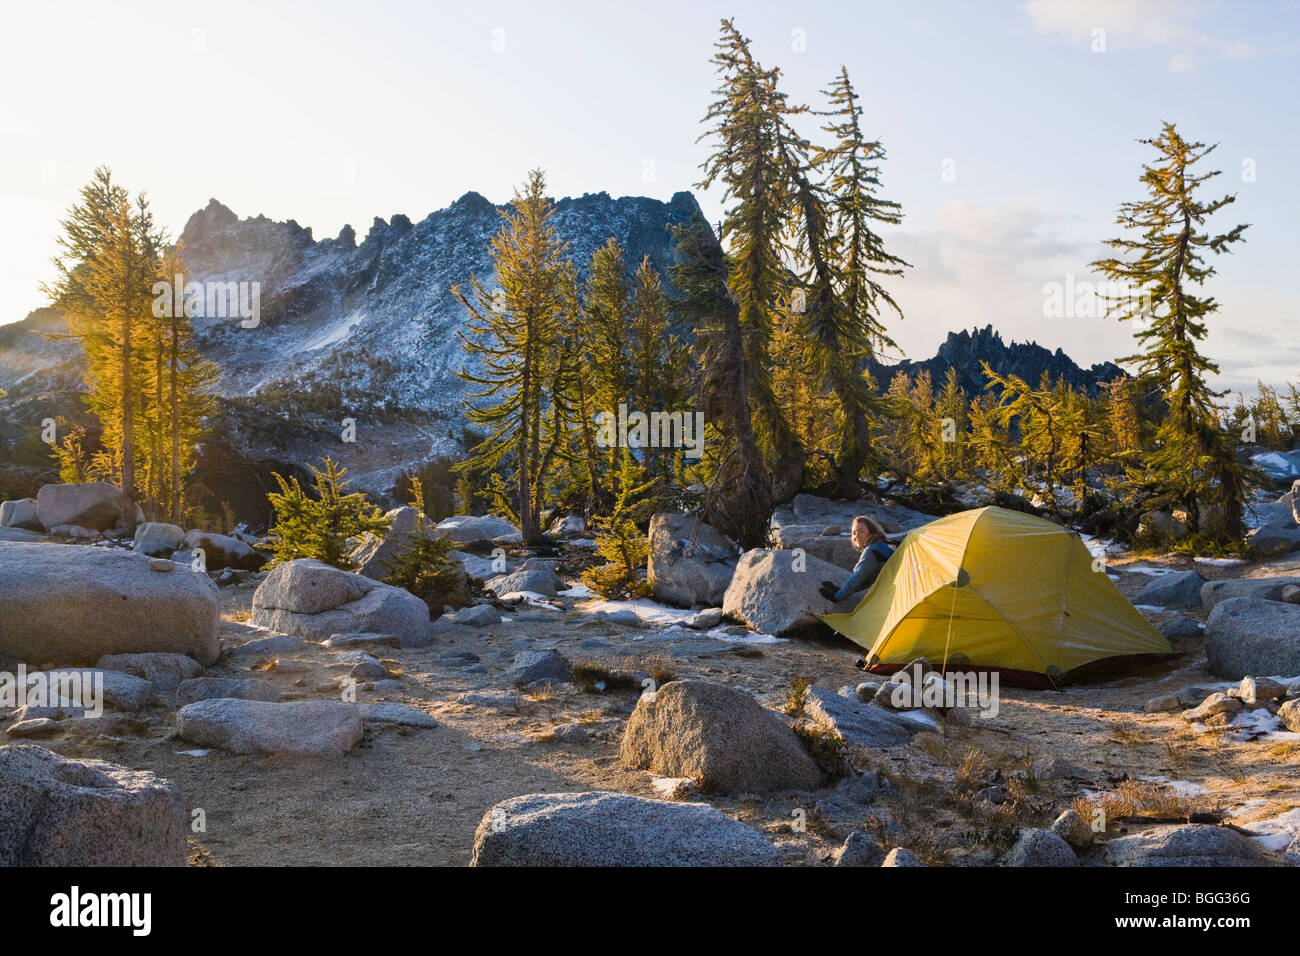 A woman emerges from her tent in the Enchantment Lakes Wilderness Area, Washington Cascades, USA. - Stock Image